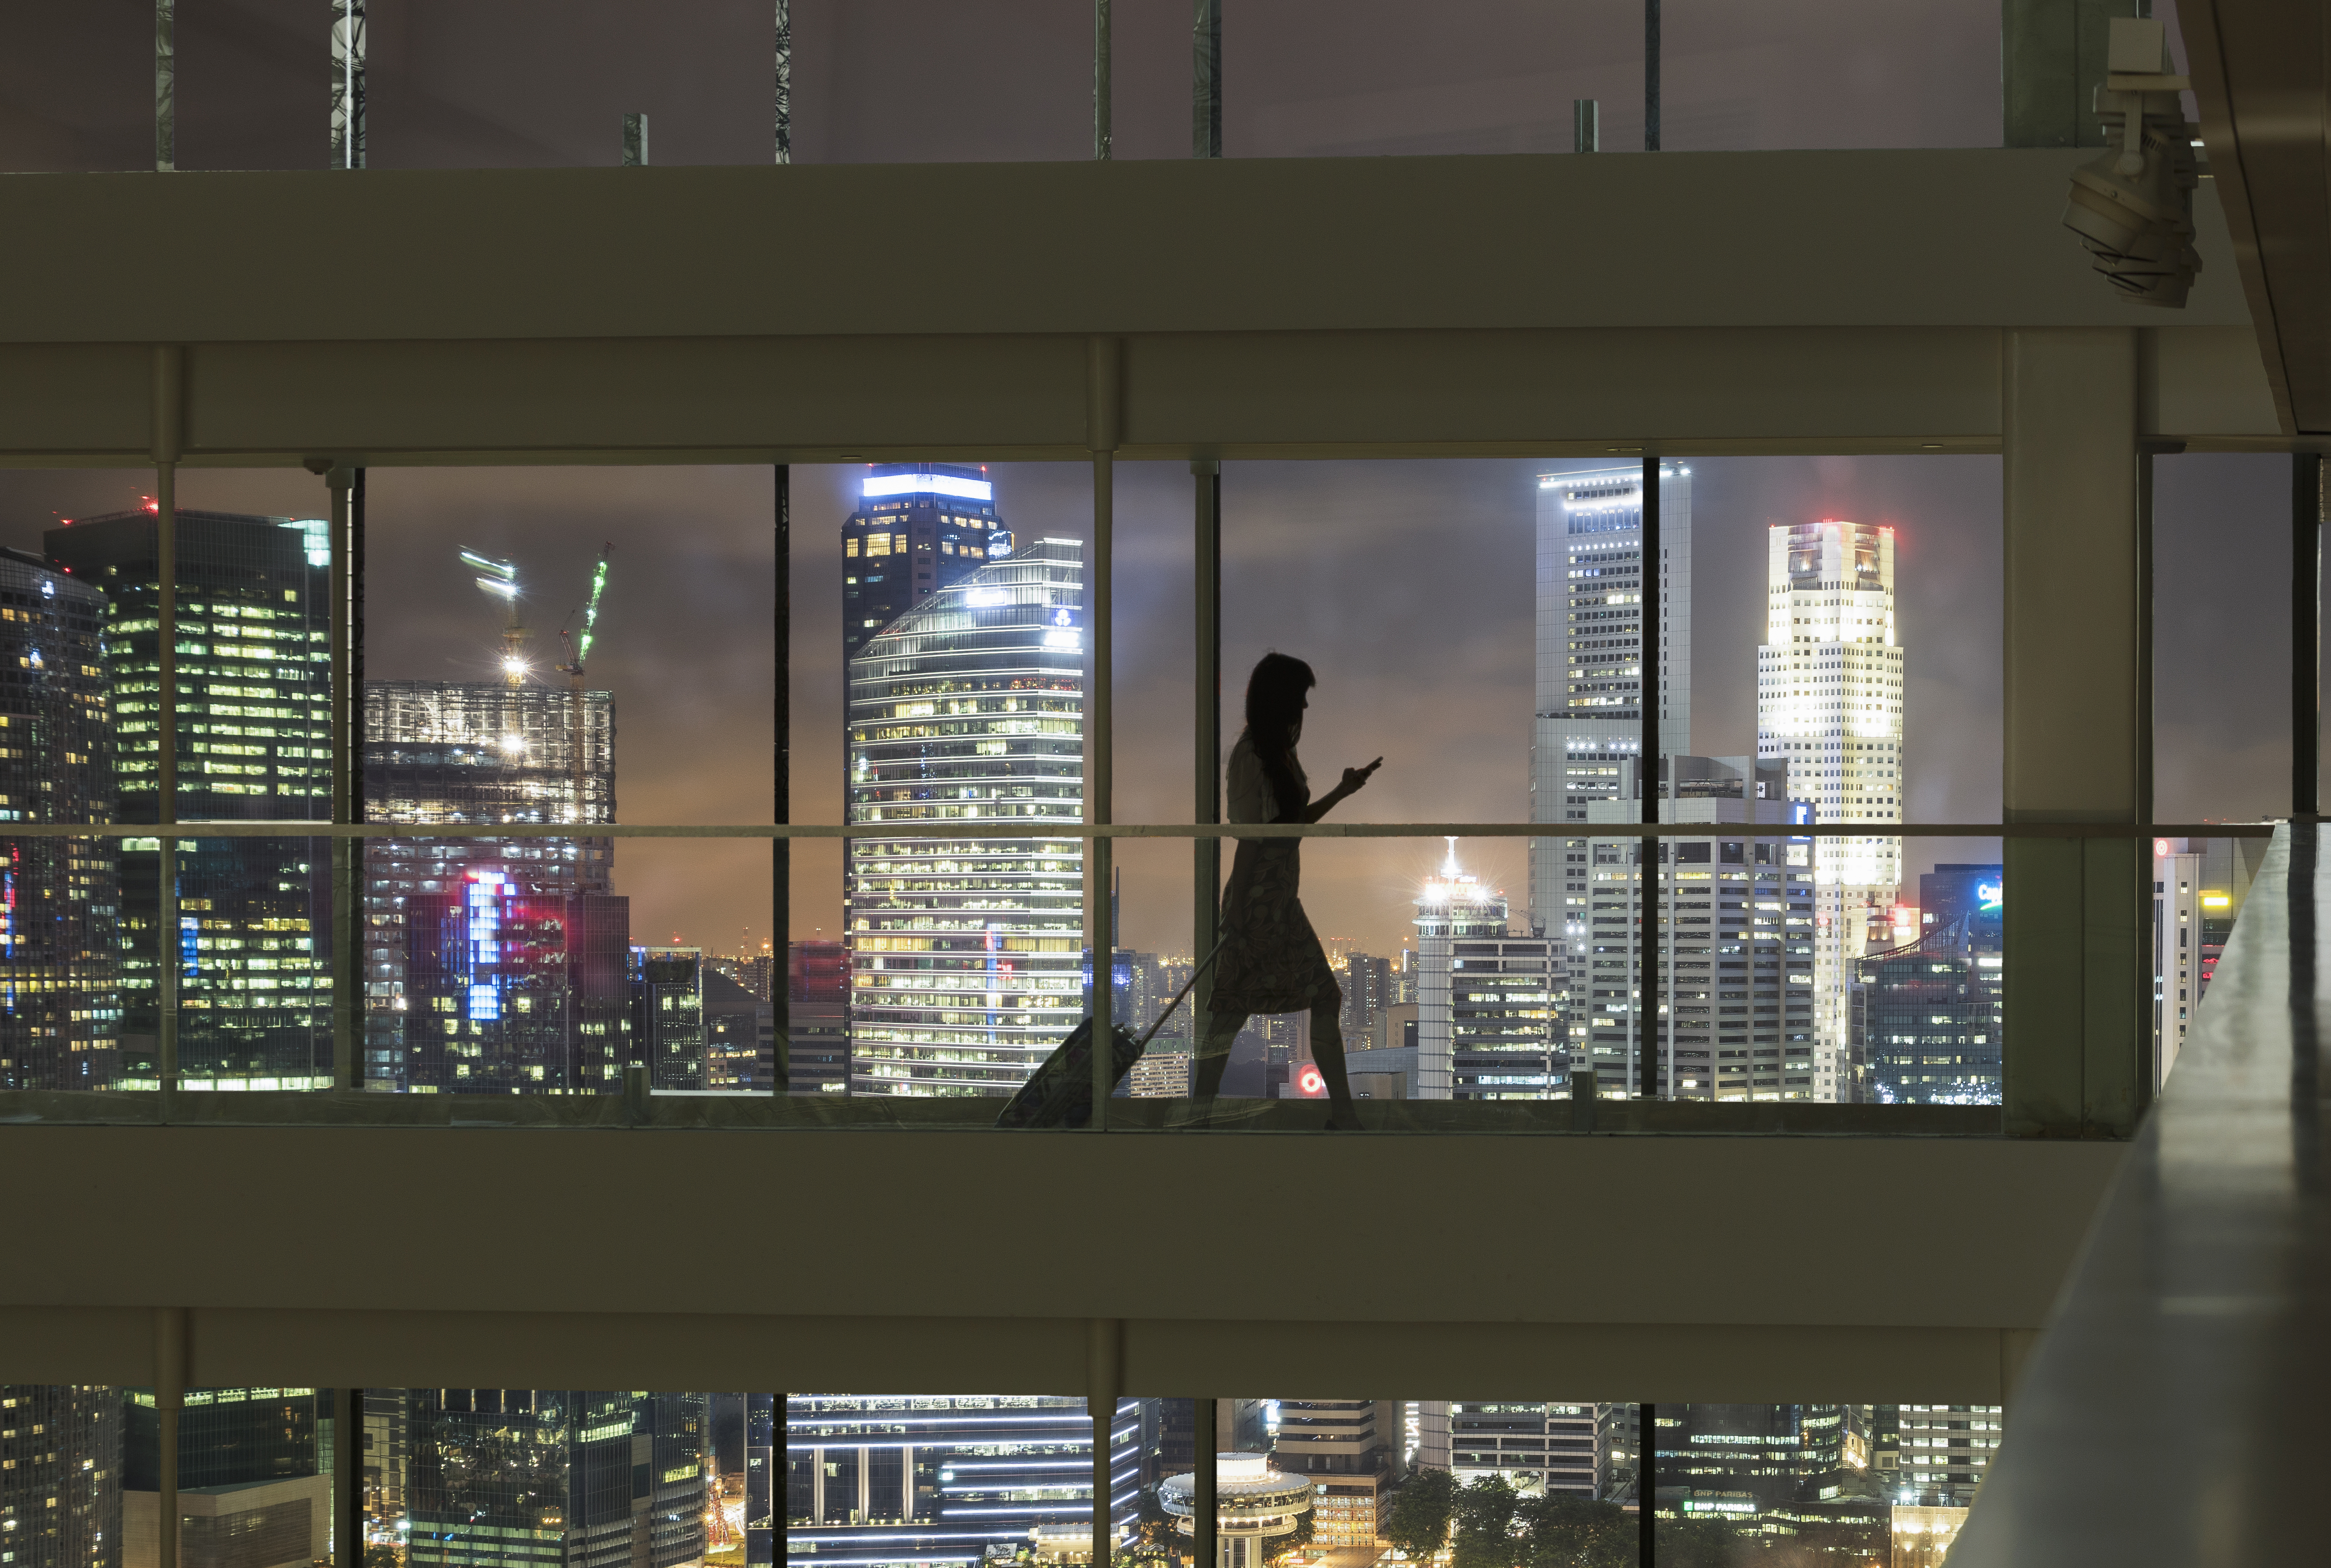 Young woman using smartphone and pulling suitcase, city skyline in view